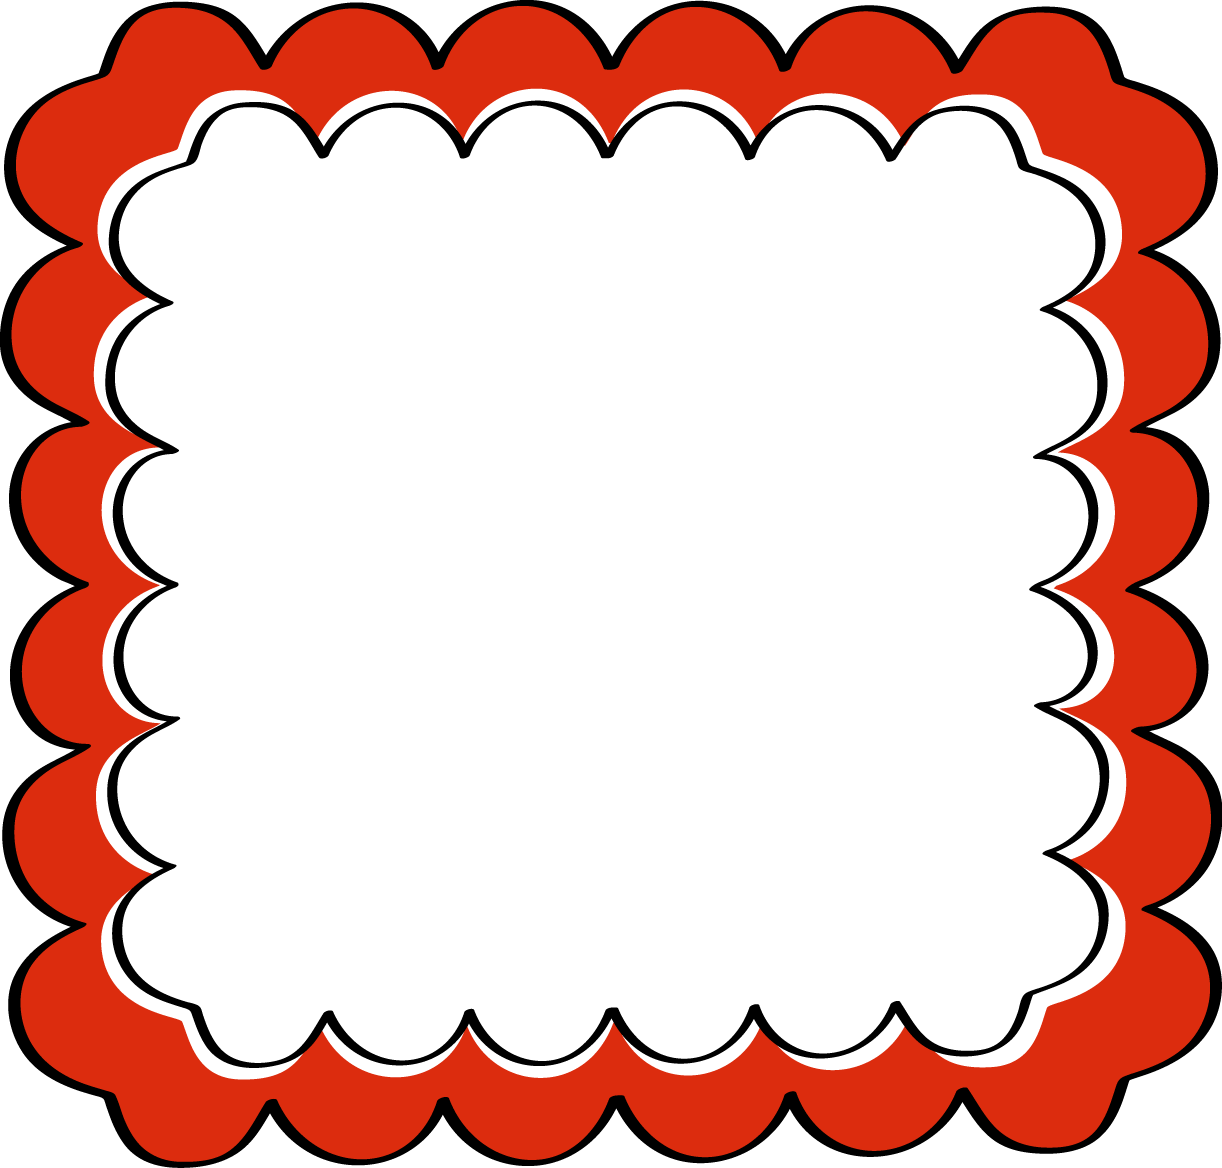 Red Scalloped Frame Png 1222 1168 Free Clip Art Frame Clipart Borders And Frames